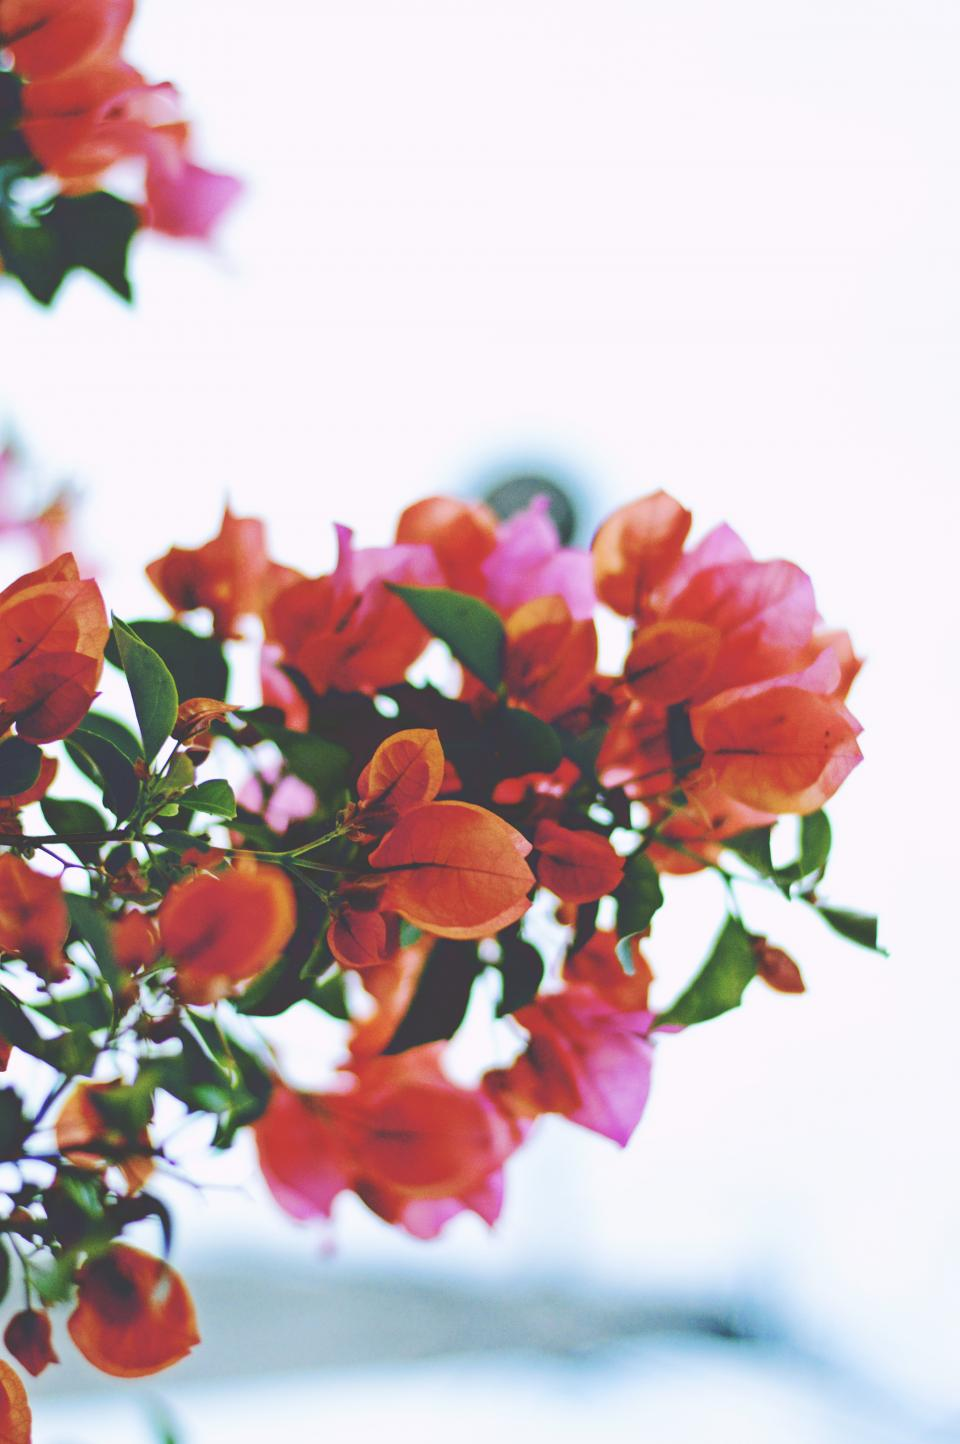 Free stock photo of bougainvillea flower